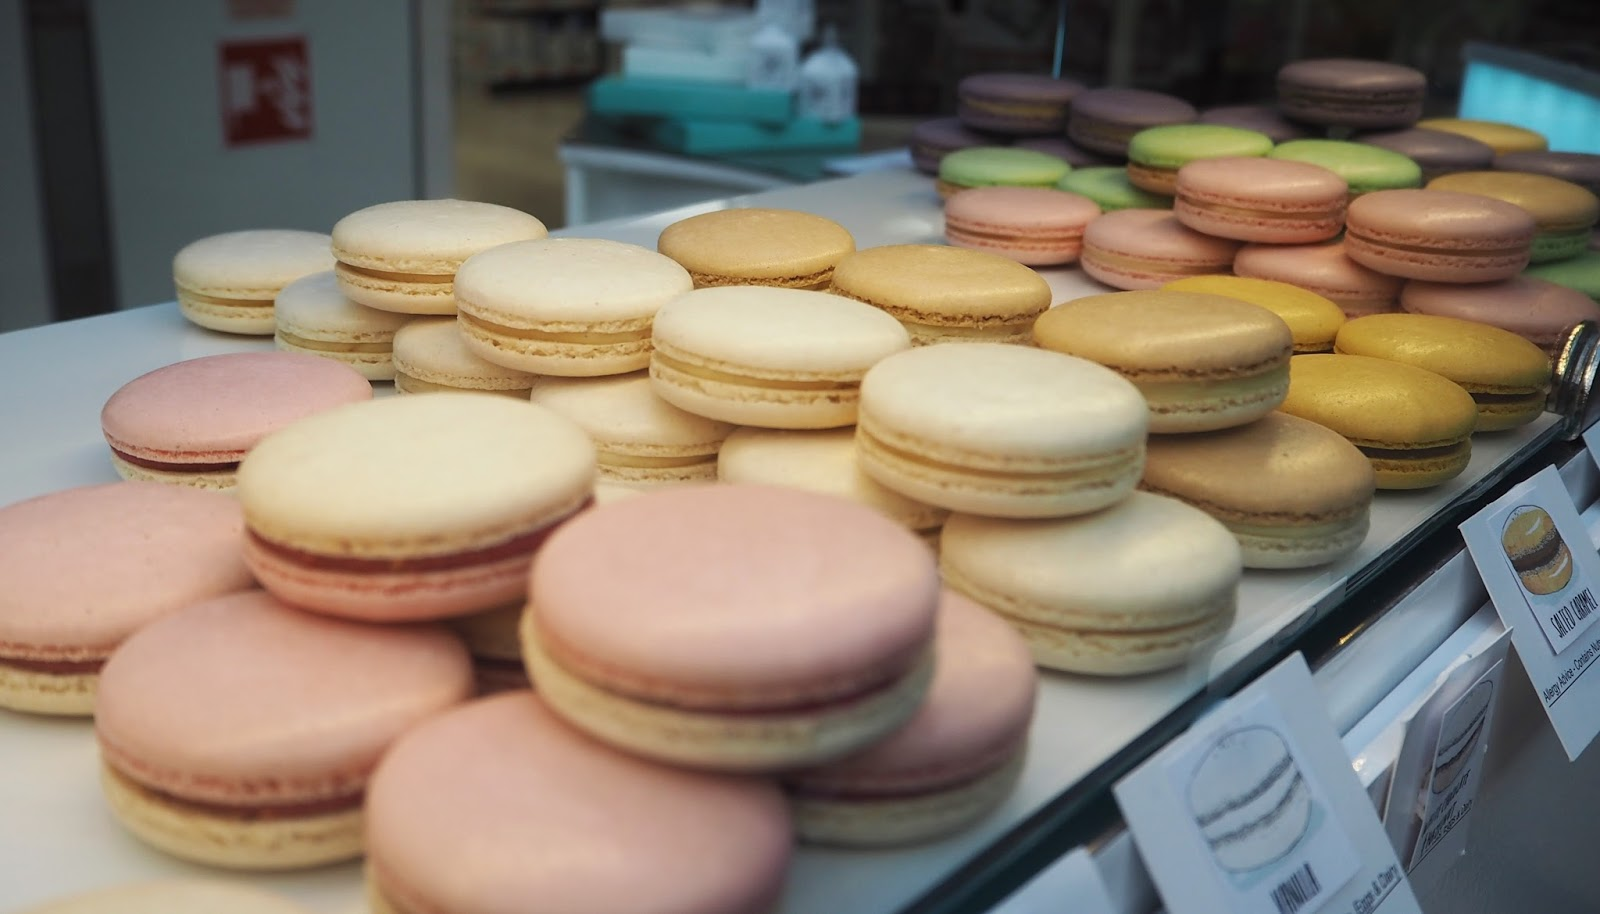 Macarons by Al Strong, Kendal shopping centre